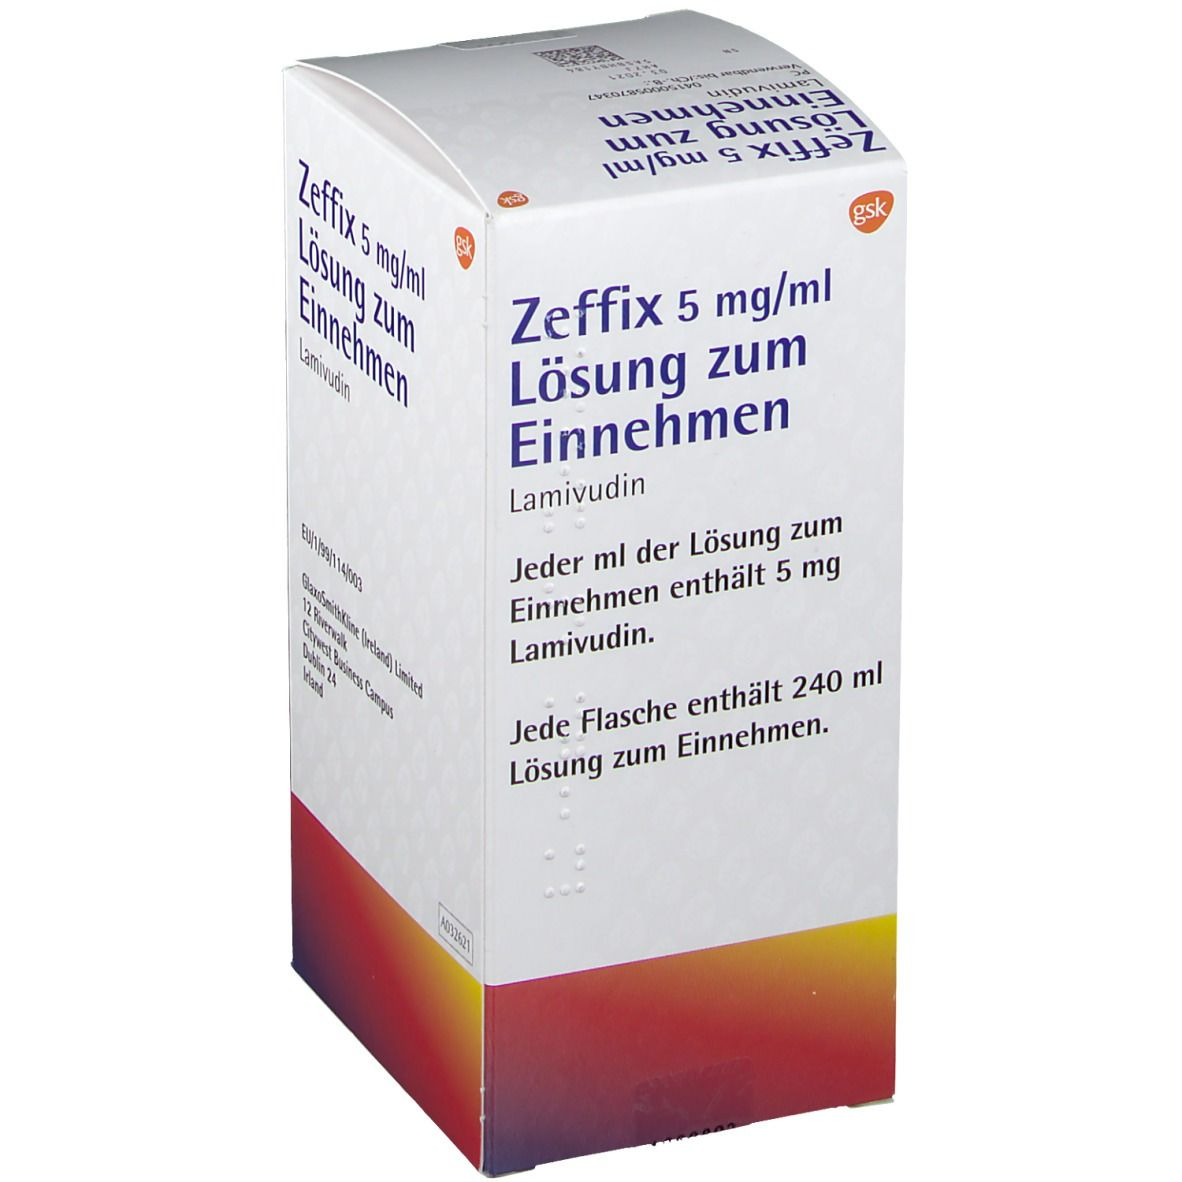 Zeffix 5 mg/ml Loesung